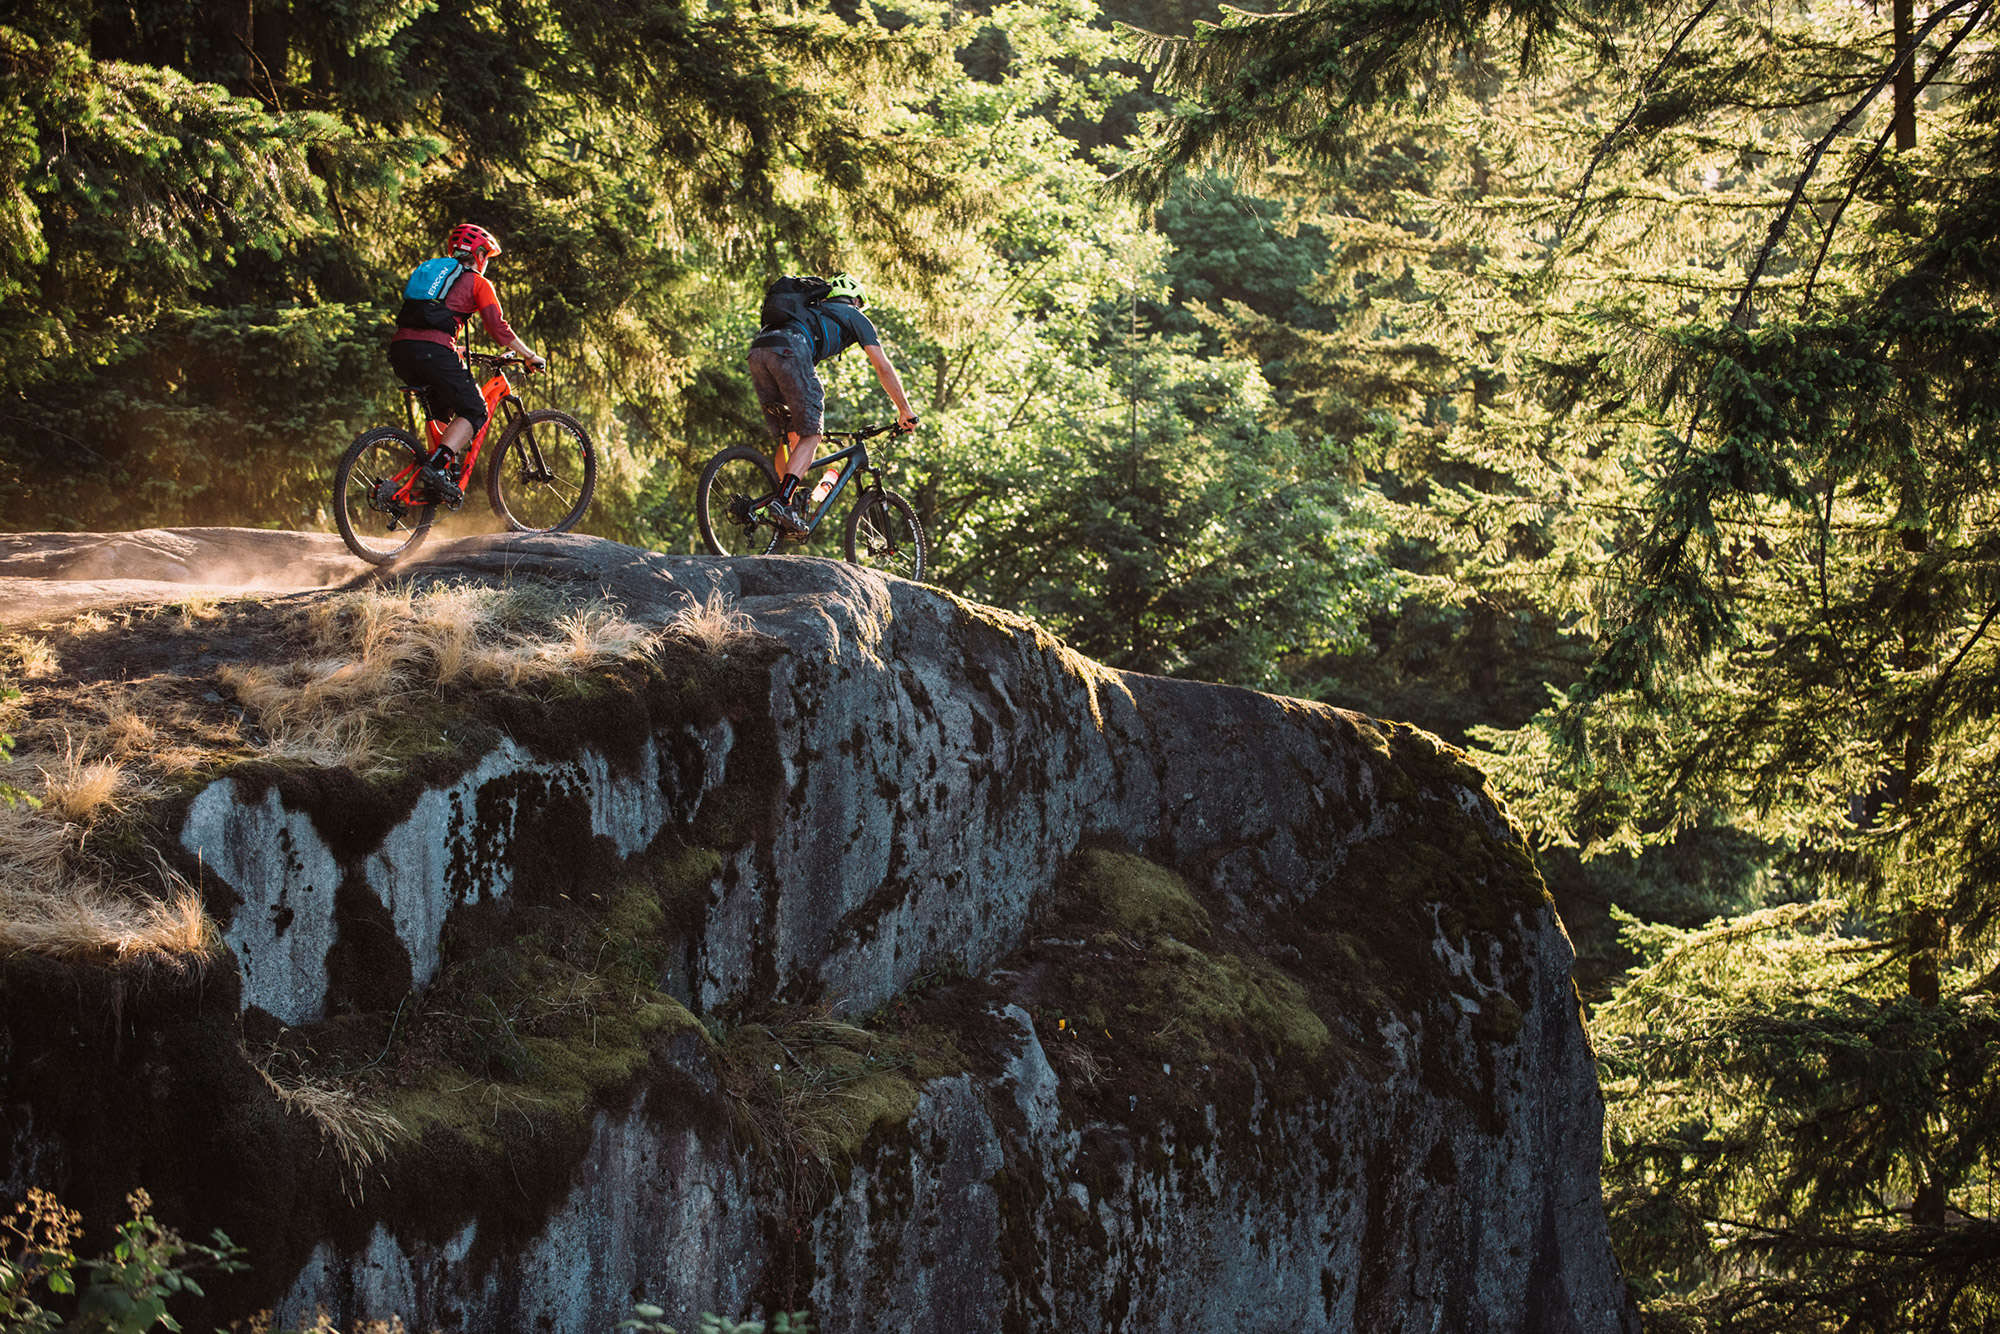 Two Mountain Bikers ride along a cliff.